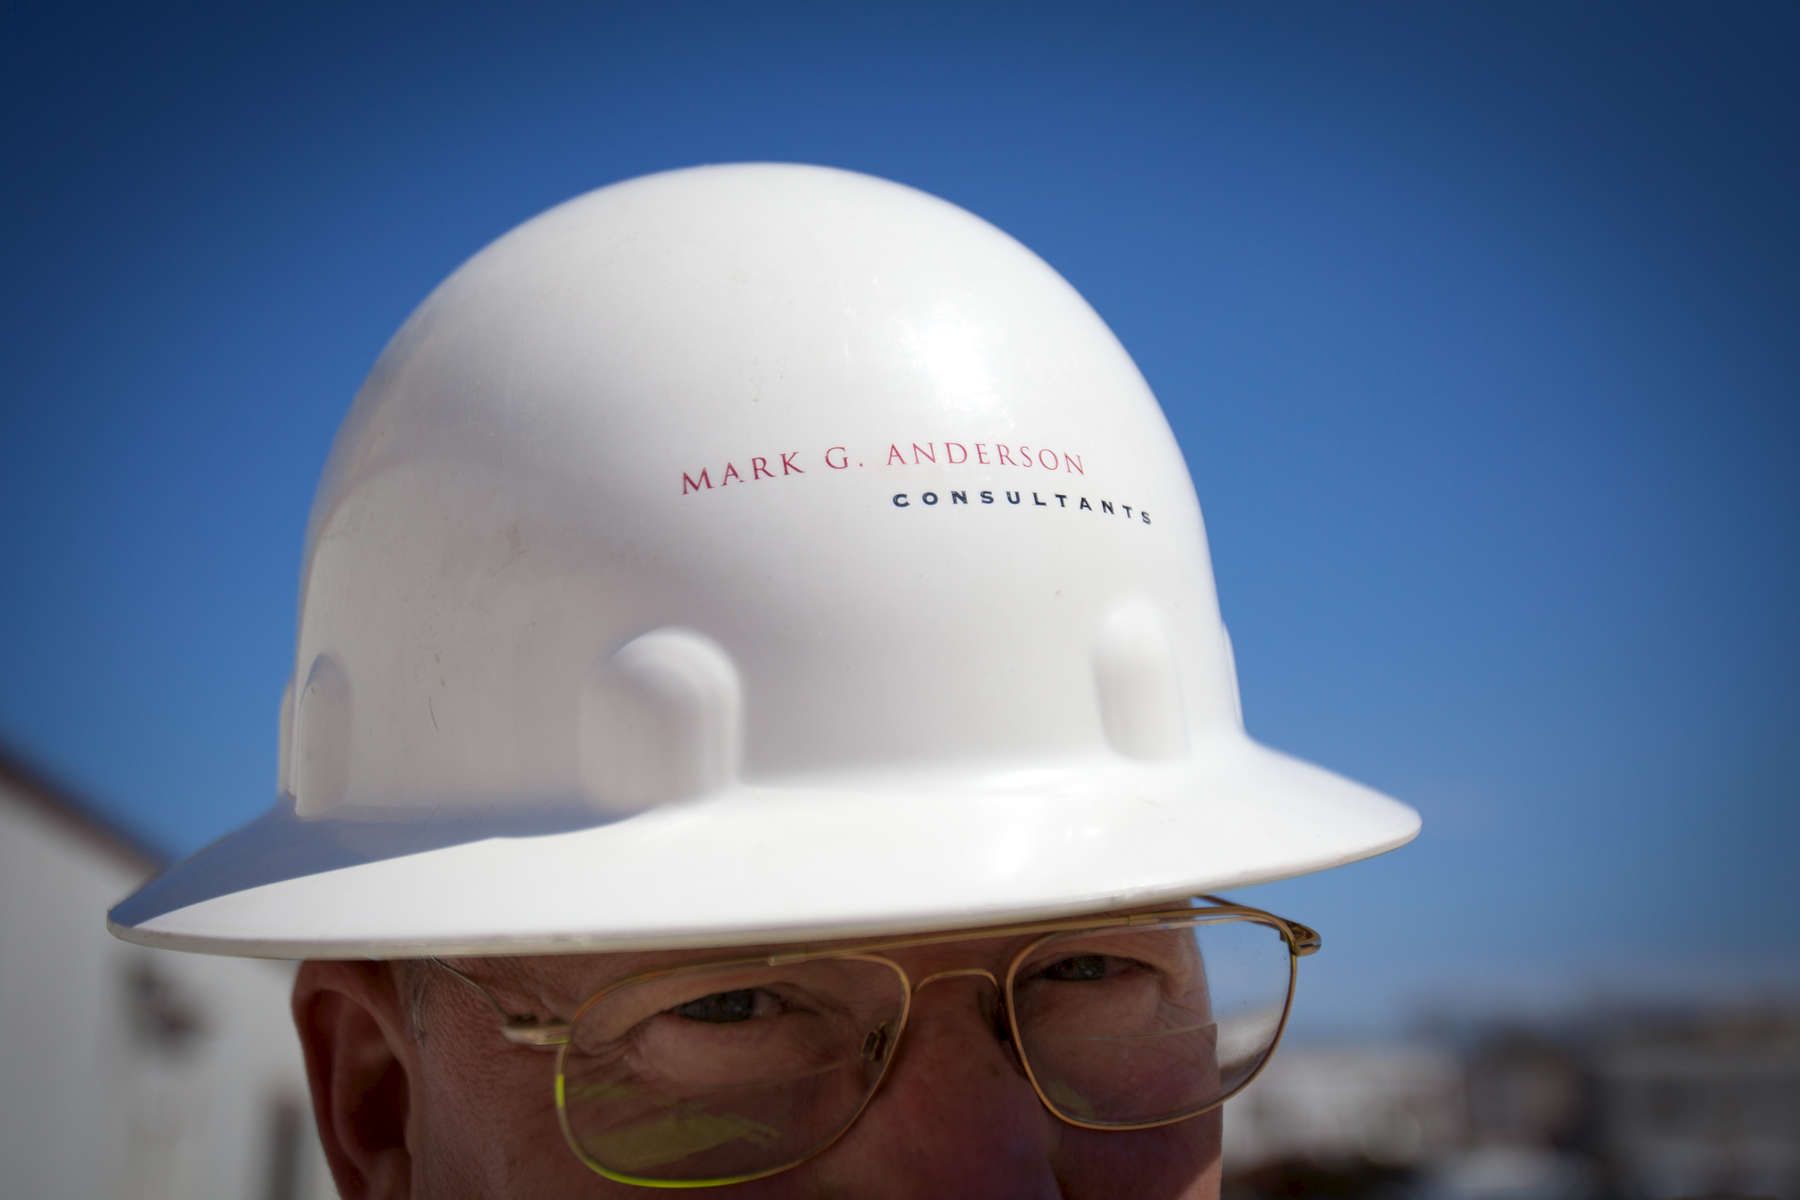 Worker for MGAC in Washington, D.C. working on the new DARPA building in Alexandria, Virginia. MGAC specializes in high-end construction and project management.